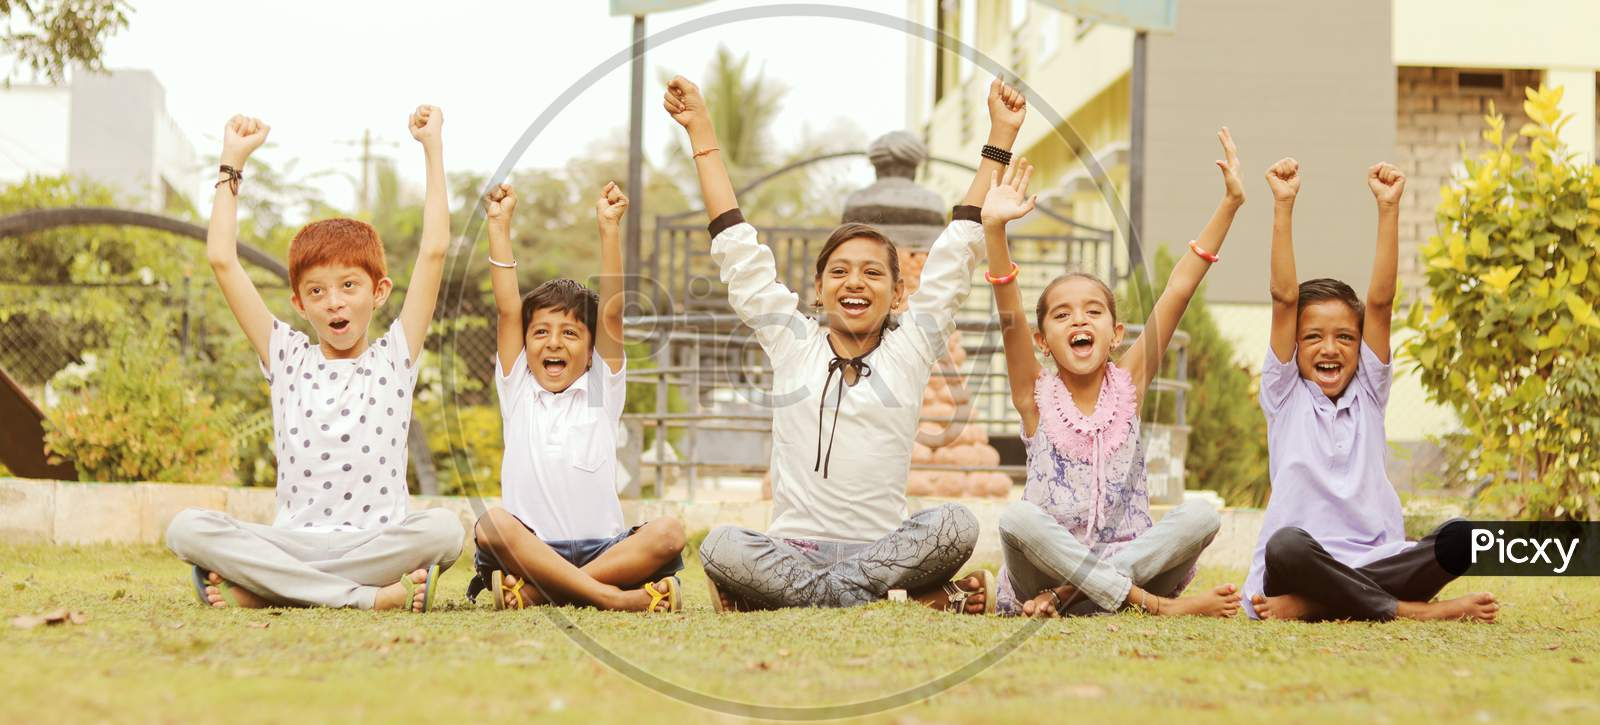 Group Of Young Children Cheering Up At Park - Teens Having Fun During Summer Vacation - Multi Ethnicity Children Playing Joyful By Braking The Racism.